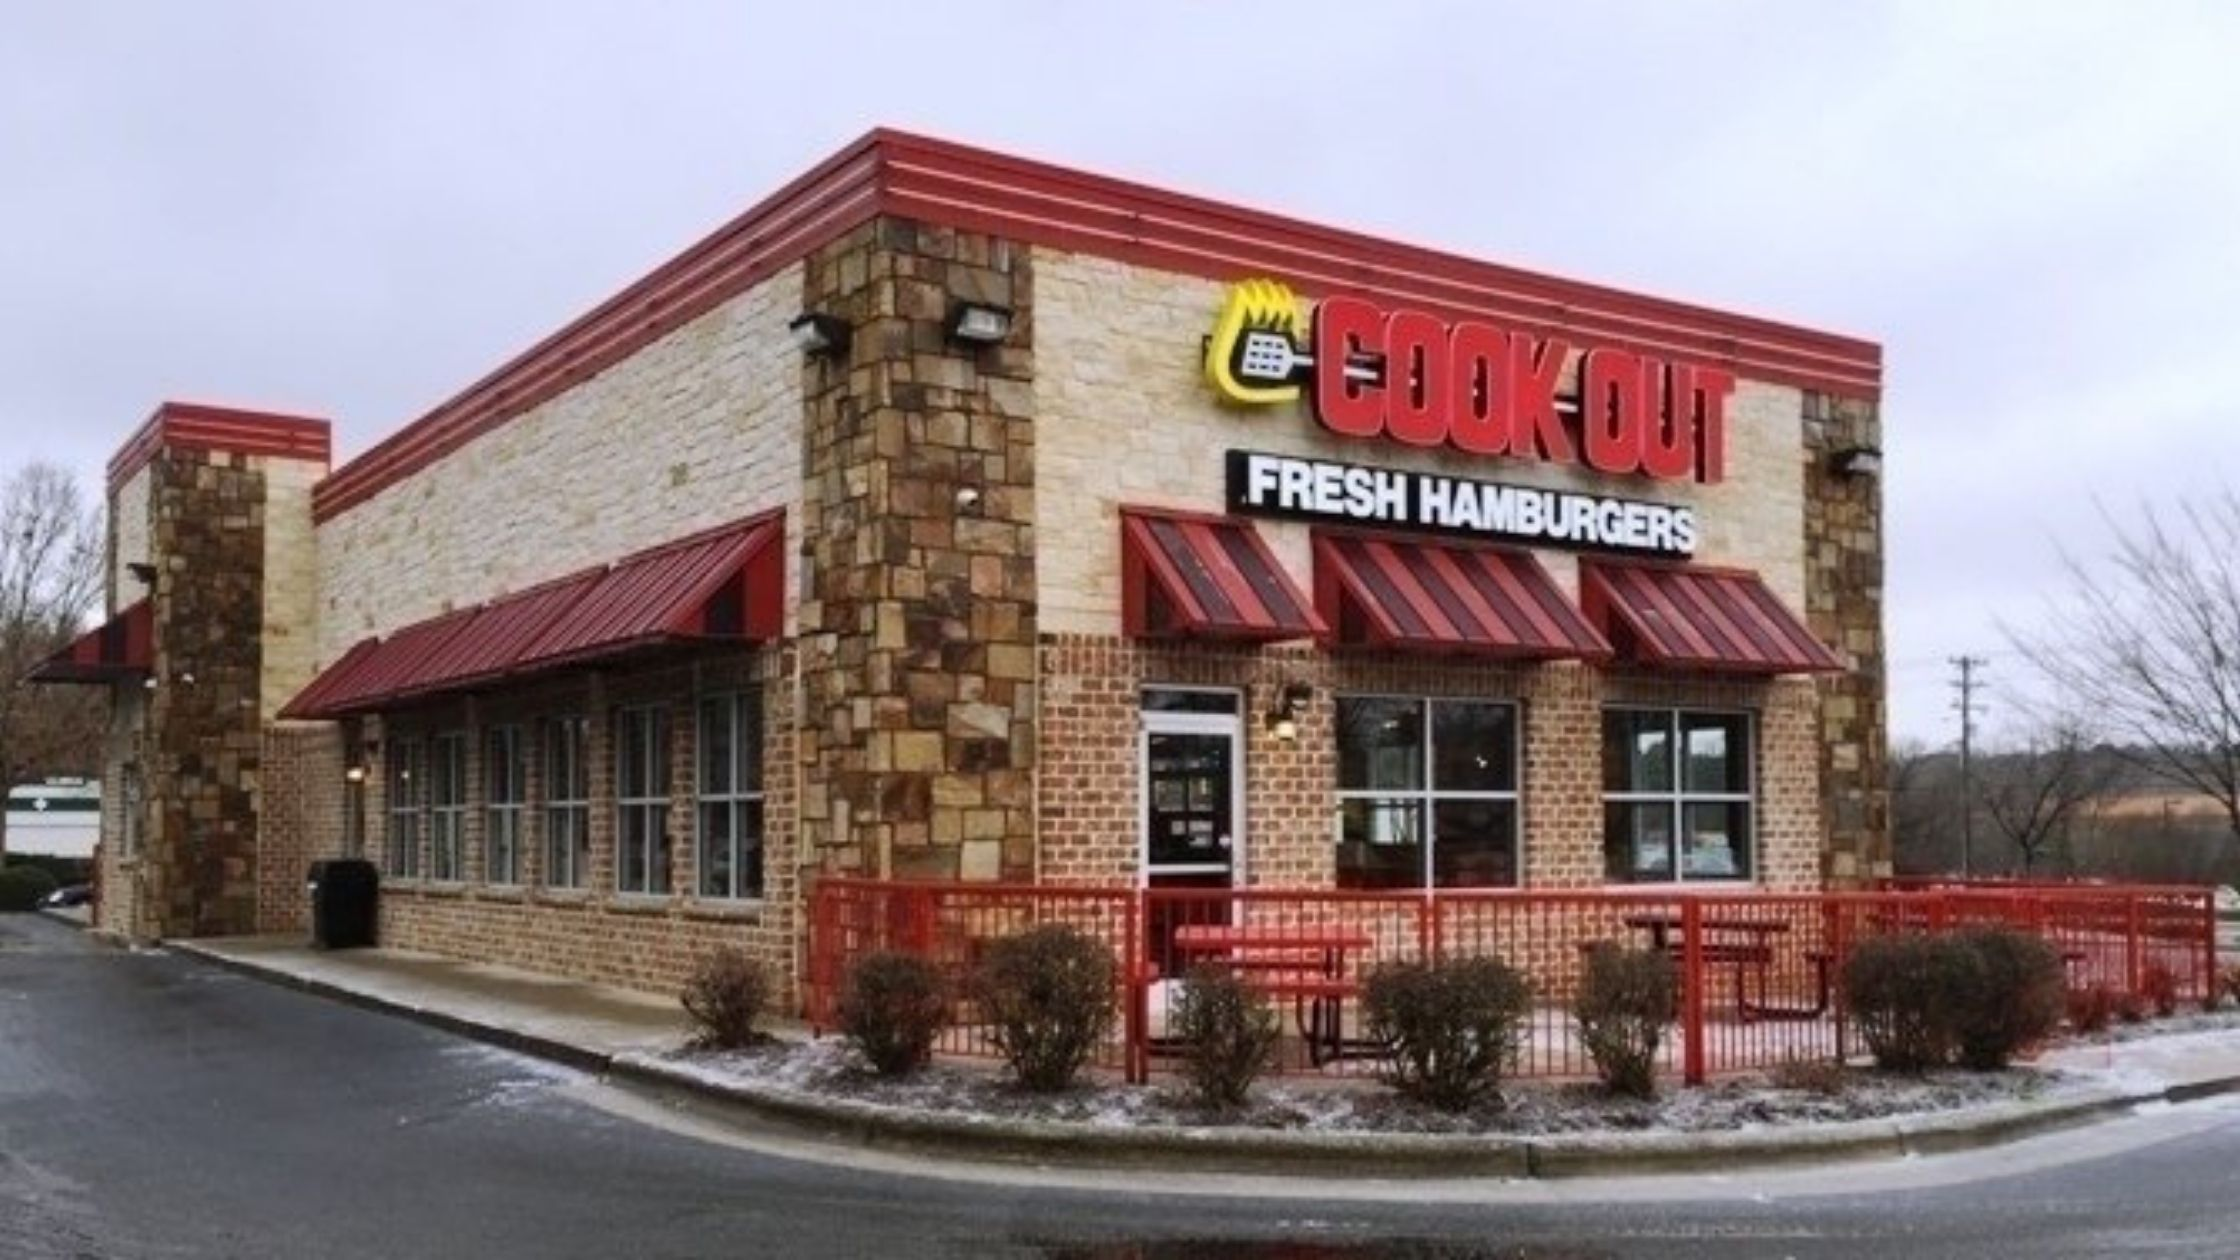 Cook Out Menu & Prices 2021